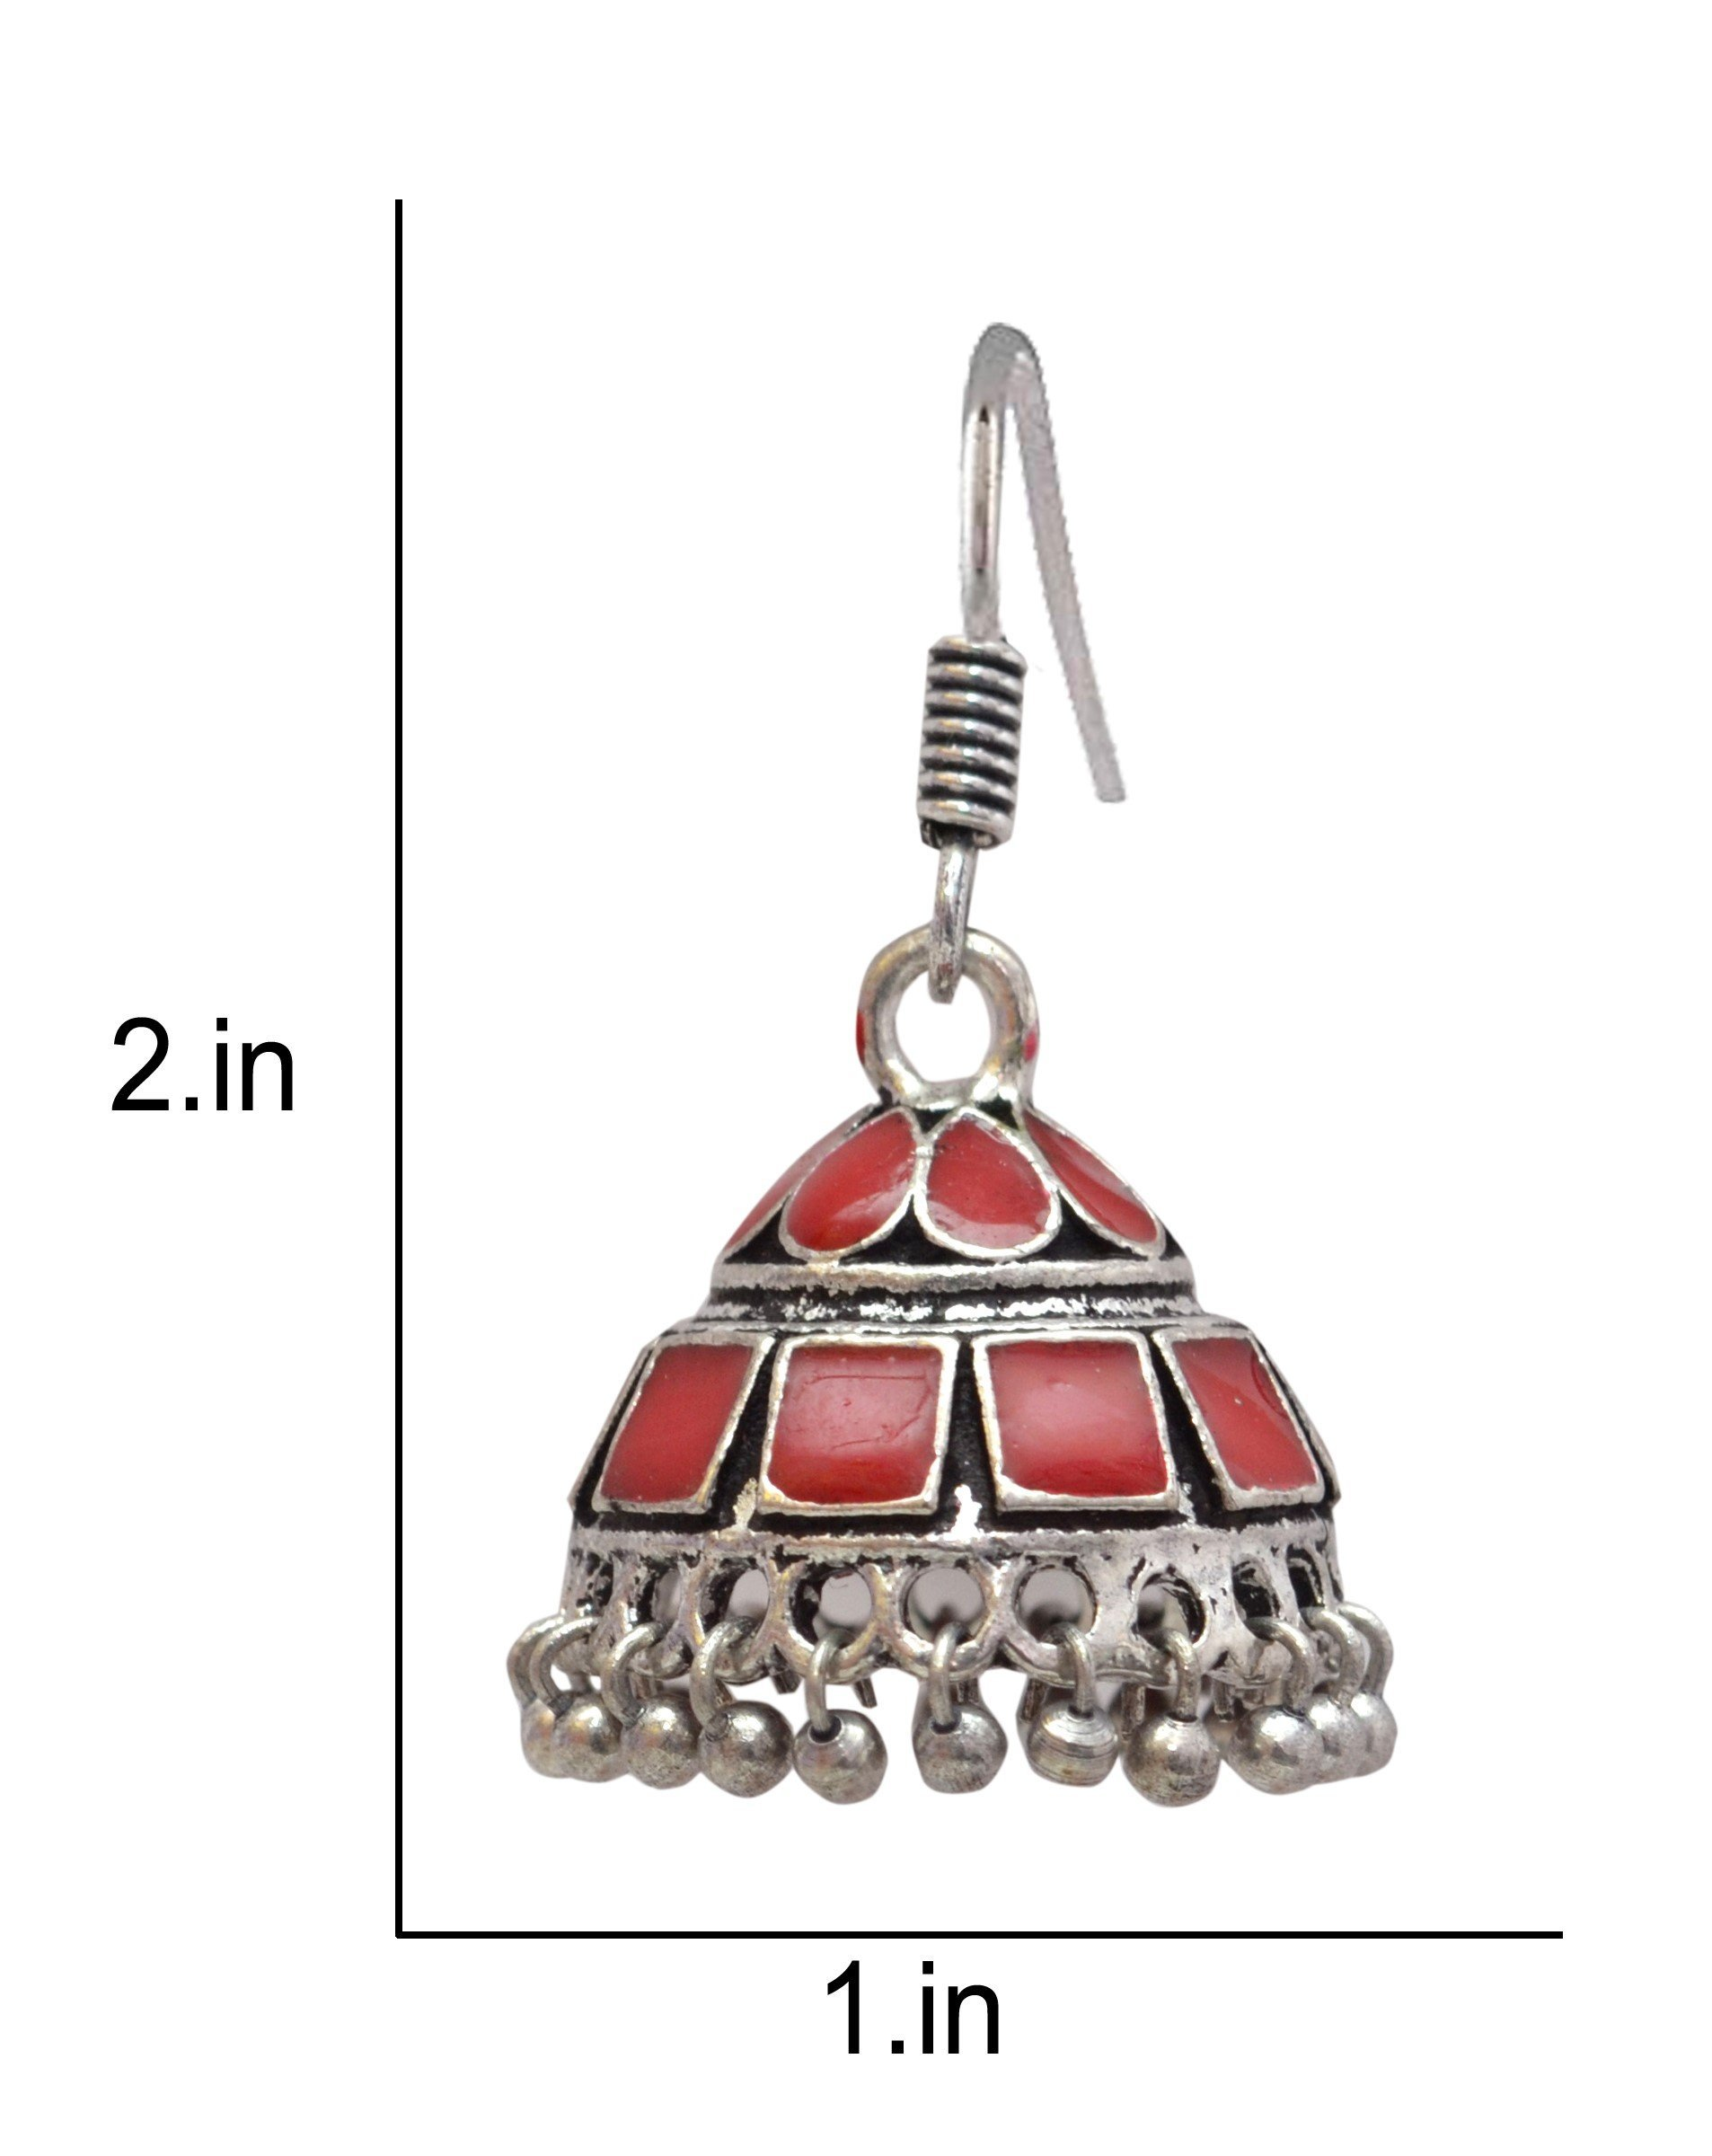 Sansar India Enamel Lightweight Jhumka Indian Earrings Jewelry for Girls and Women 1383 by Sansar India (Image #3)